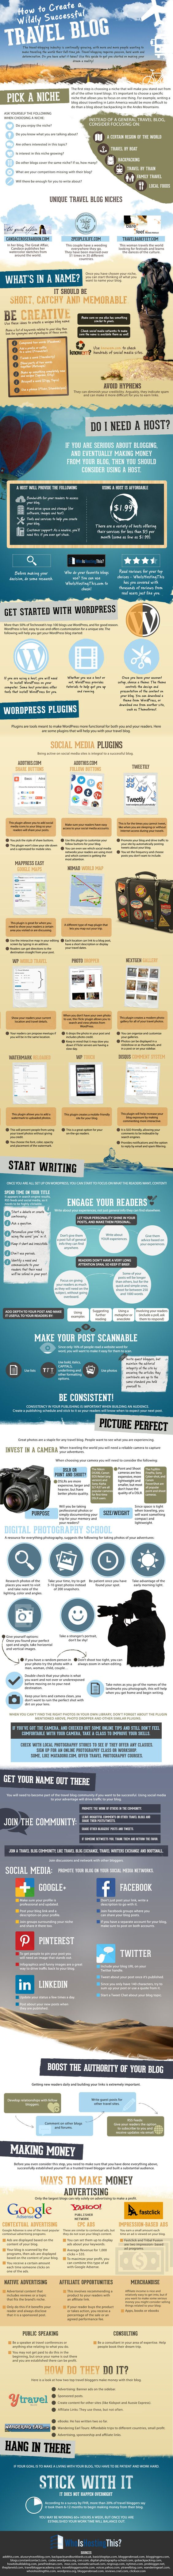 How to Create a Wildly Successful Travel Blog - #infographic #blogging #TravelBlog